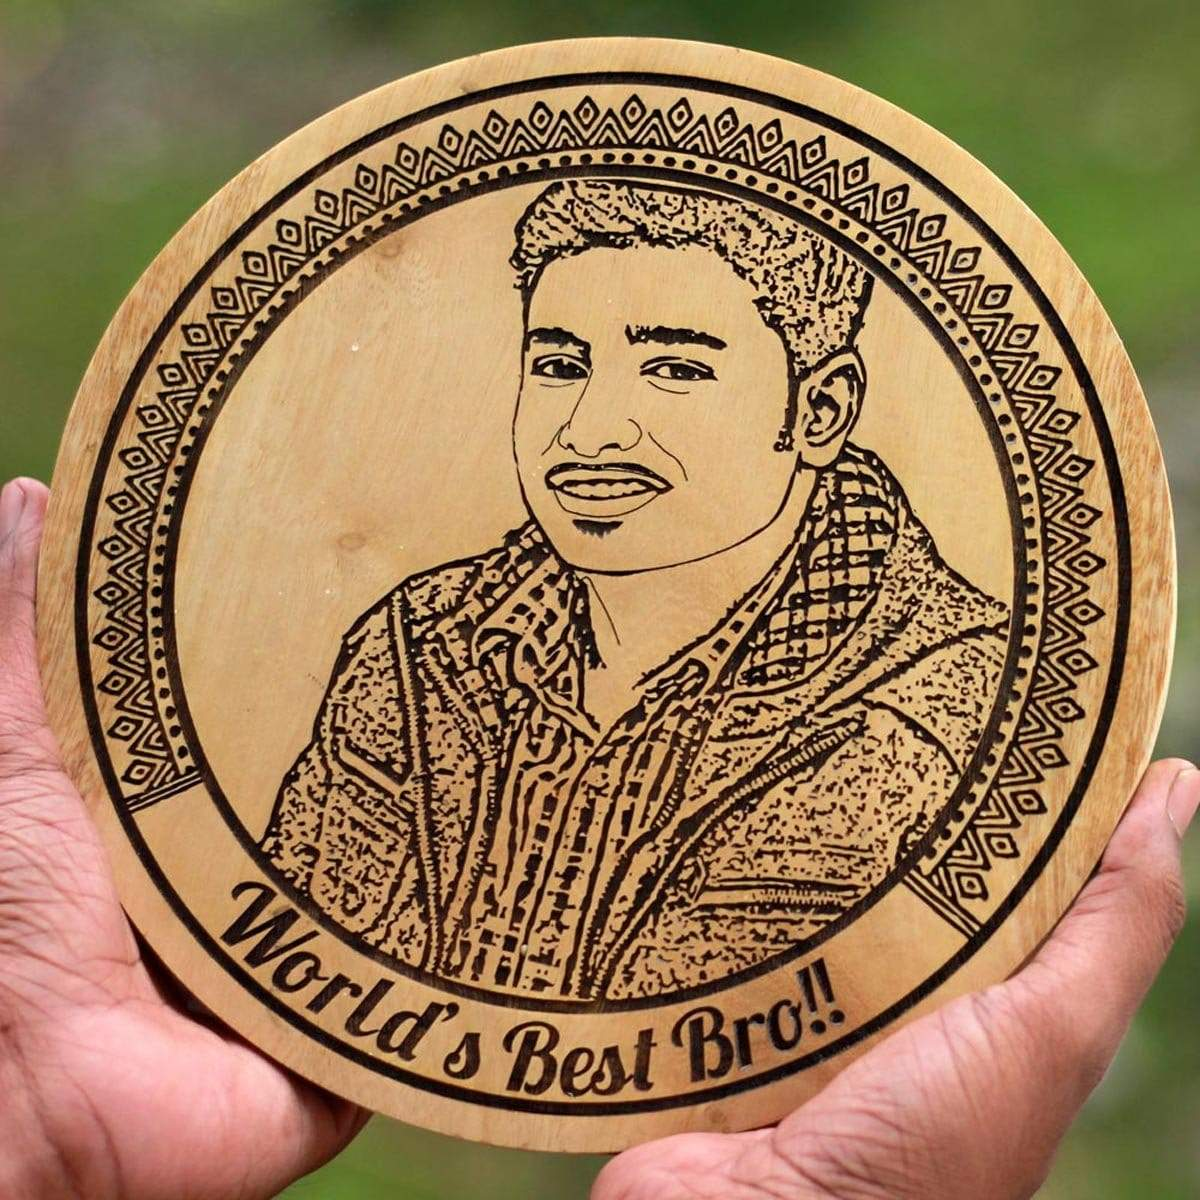 World's Best Bro Wood Engraved Photo. This photo engraved wooden frame is the best photo gift for brother. Looking for Rakhi gifts or birthday gifts for brother? This wooden poster is perfect.